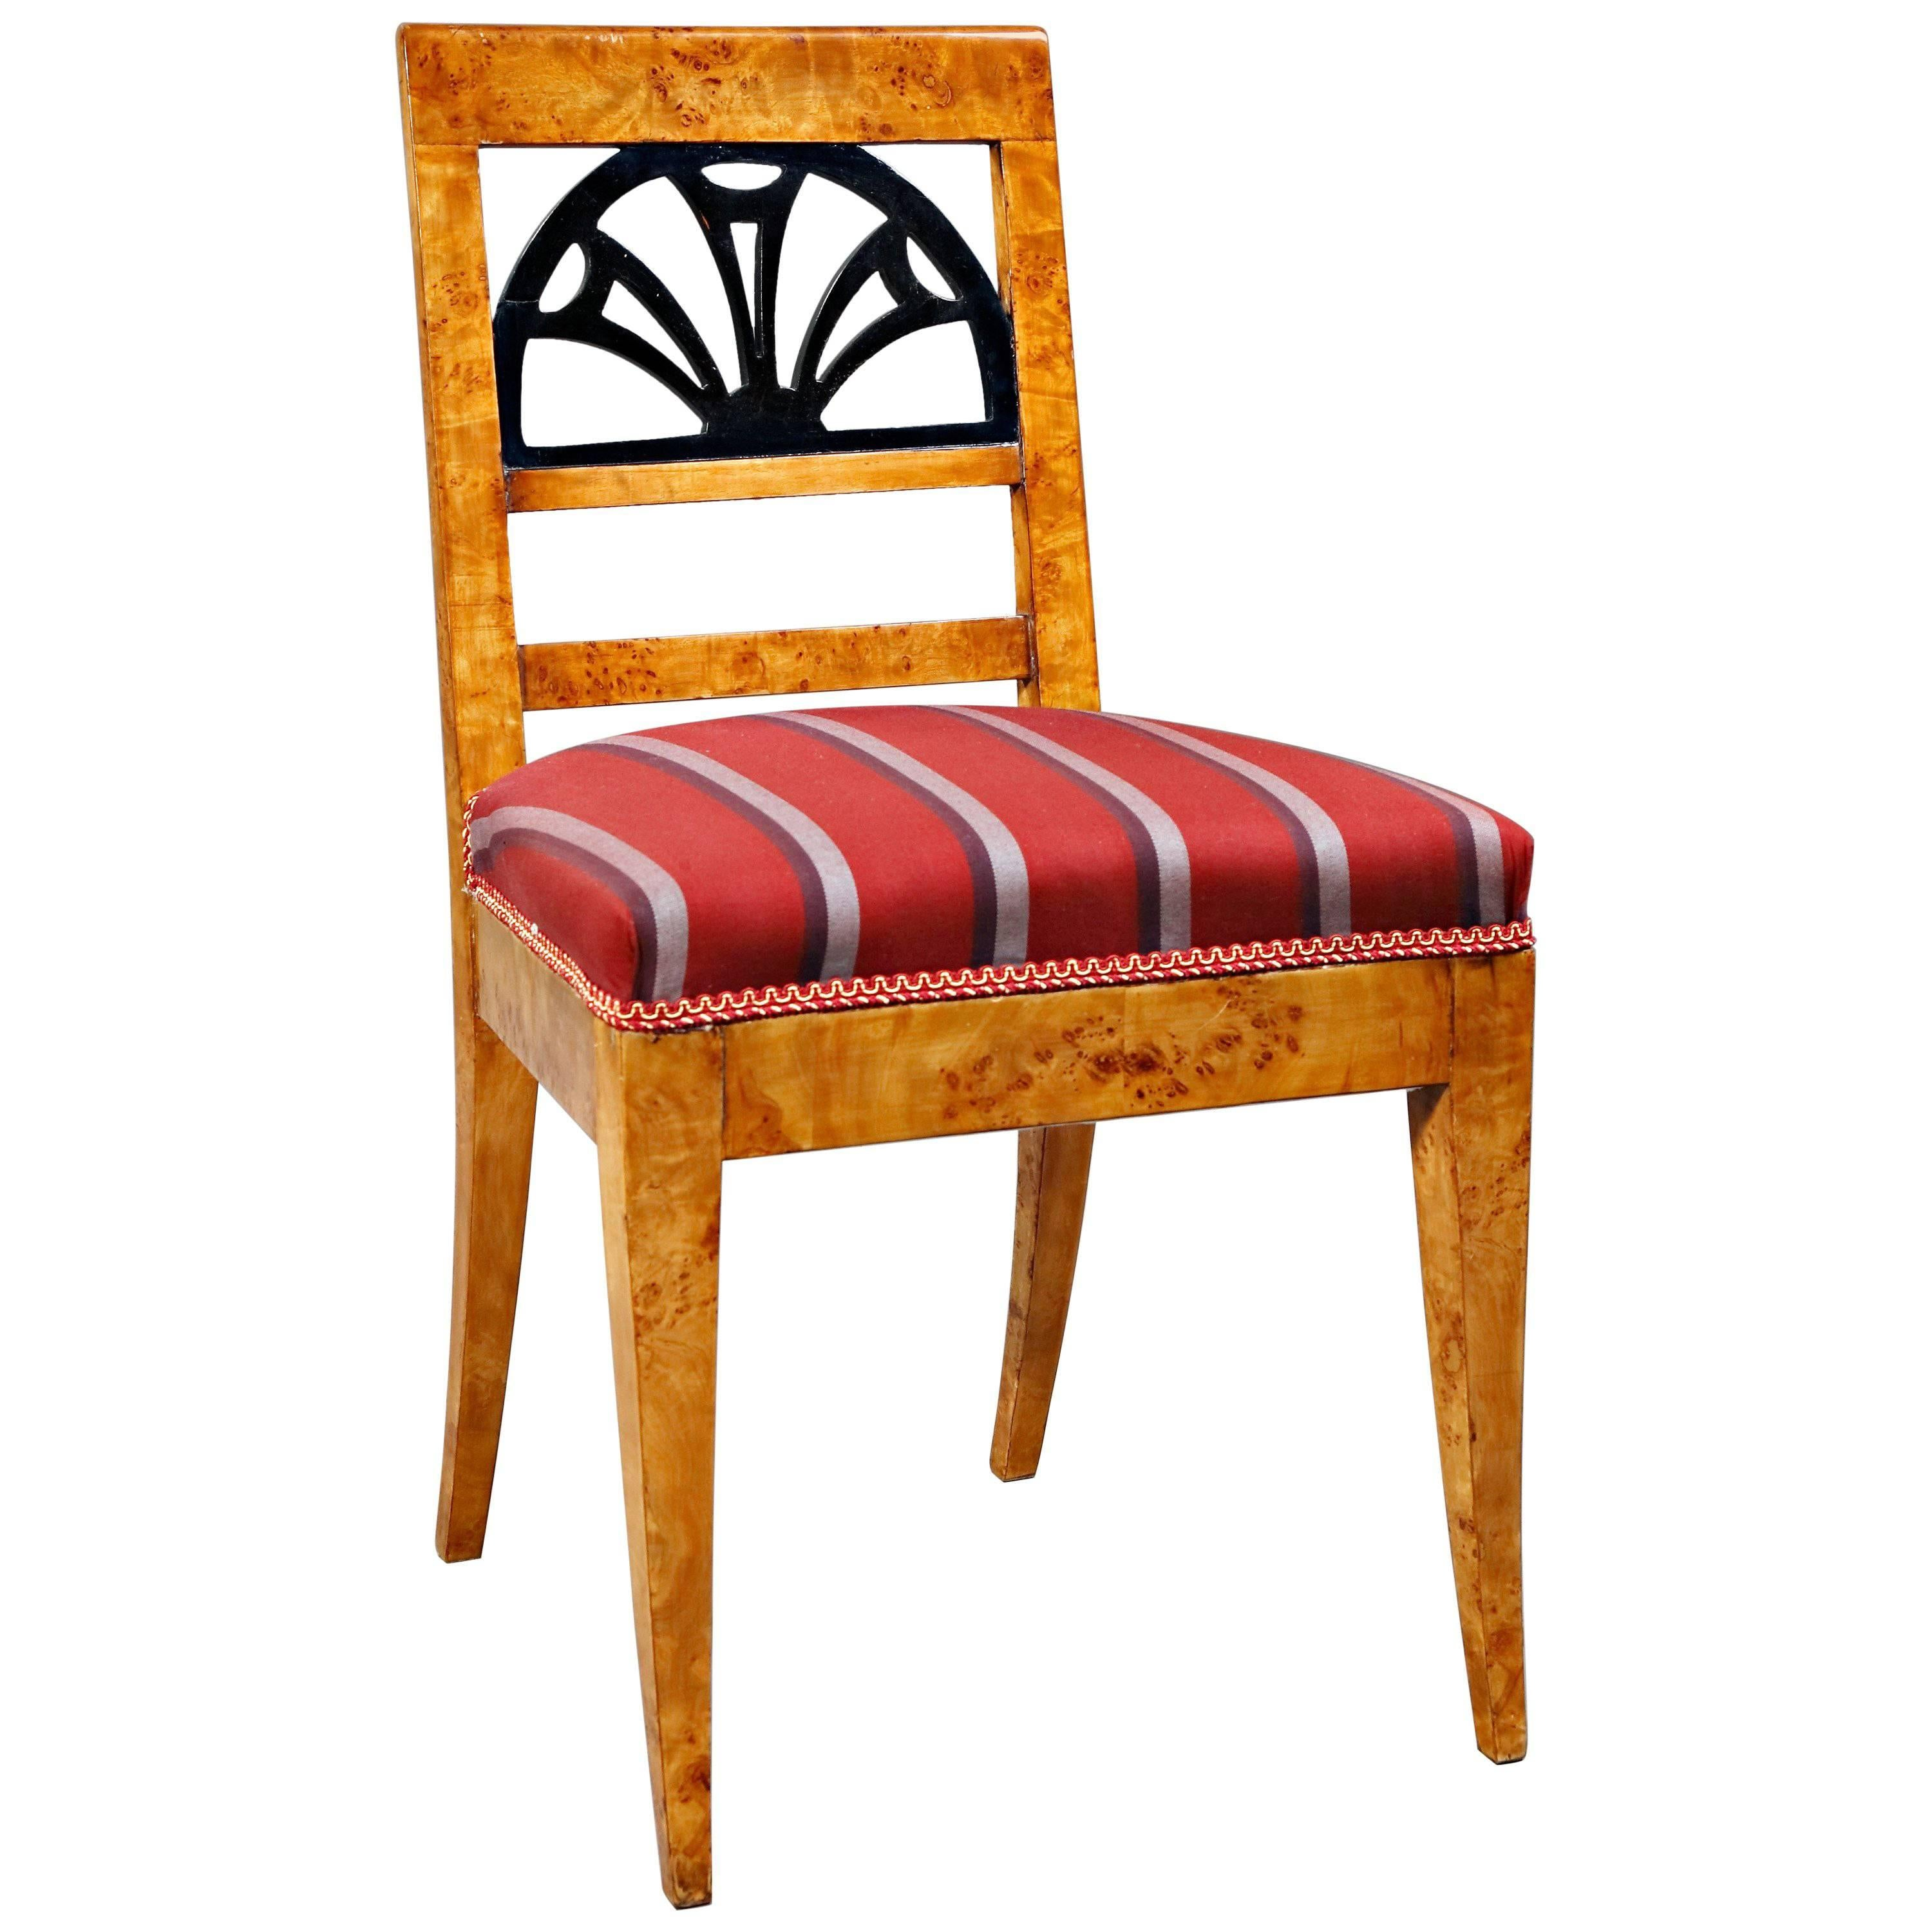 20th Century Elegant Classic Chair In The Biedermeier Style 1